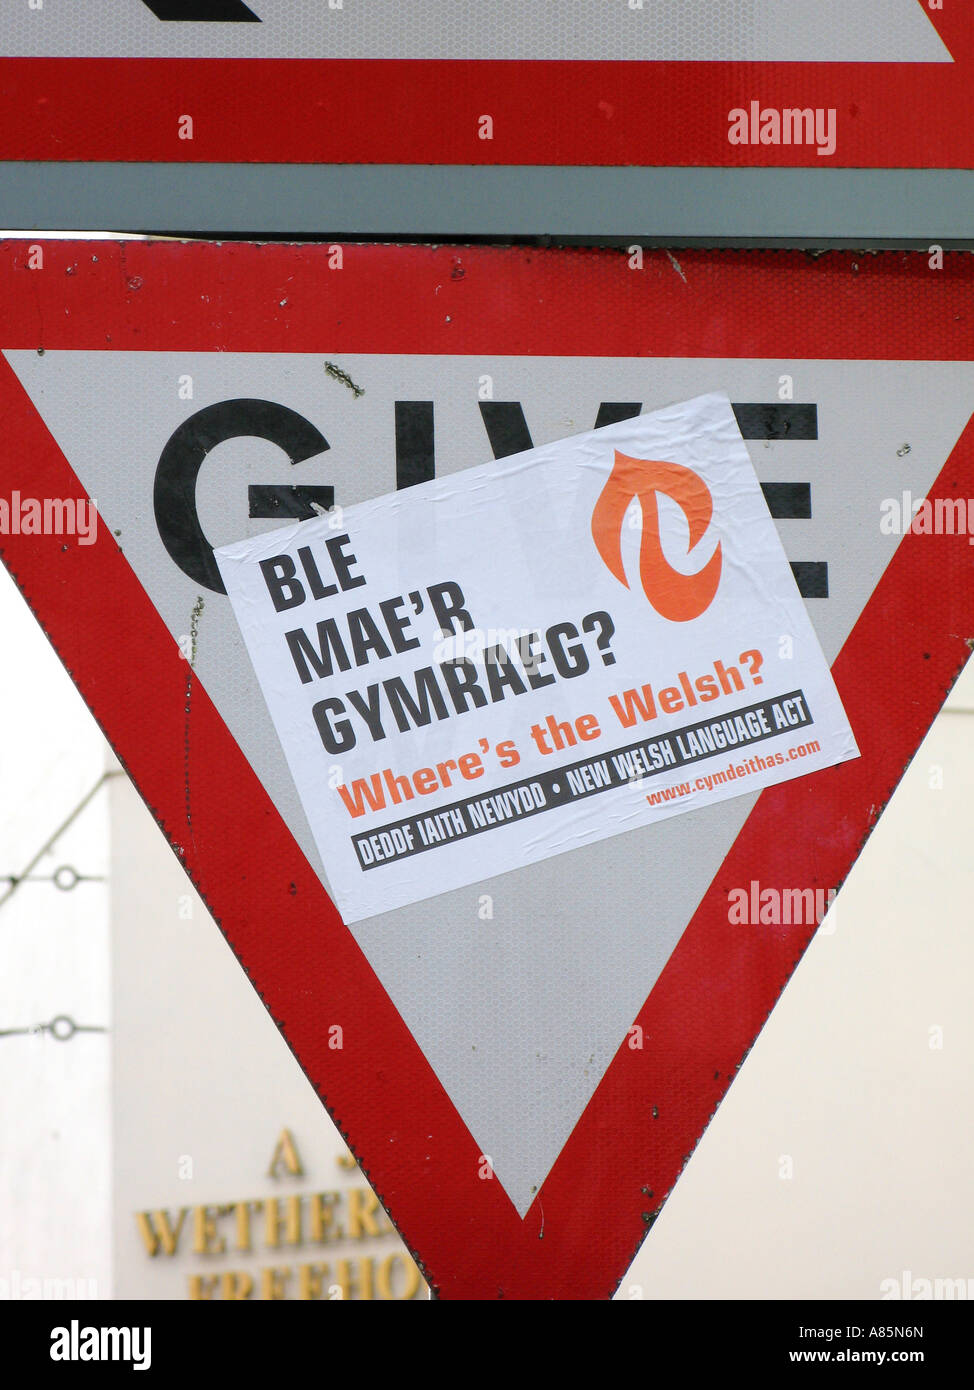 Where's the Welsh poster protest by Welsh Language Society on Give Way road traffic sign in Merthyr Tydfil South - Stock Image